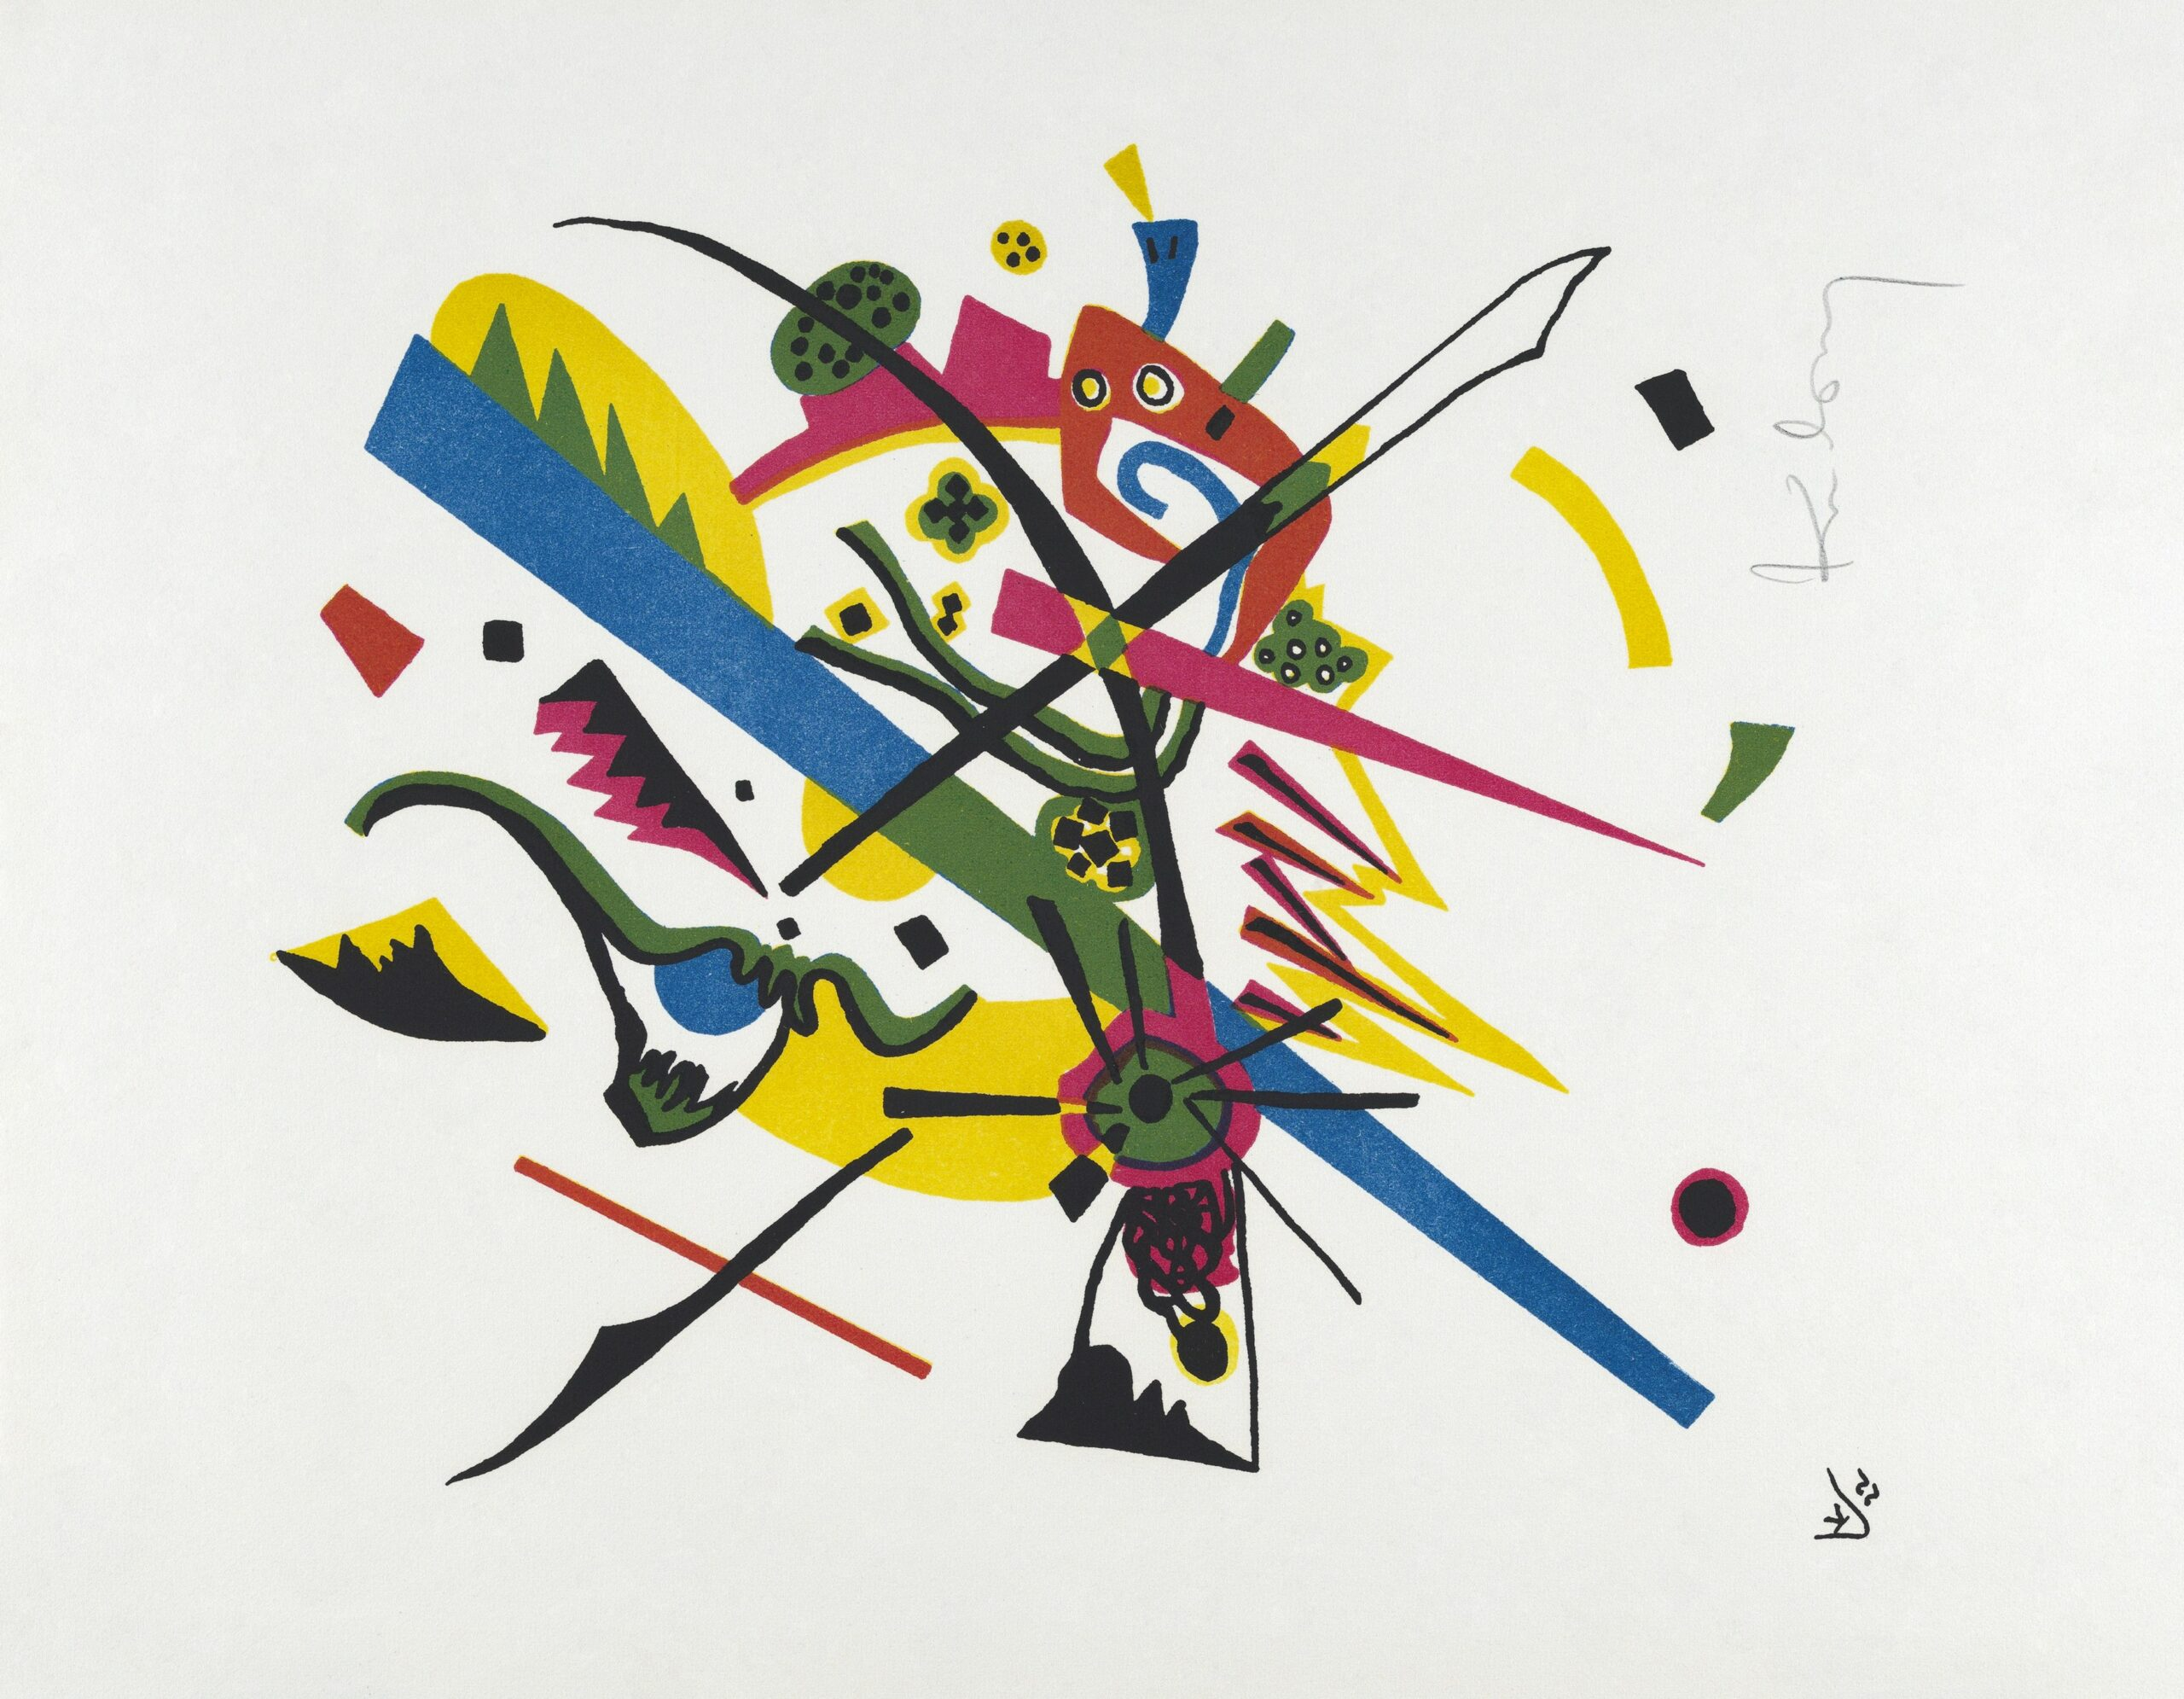 Kleine Welten I (Small Worlds I) (1922) print in high resolution by Wassily Kandinsky. Original from The MET Museum. Digitally enhanced by rawpixel.